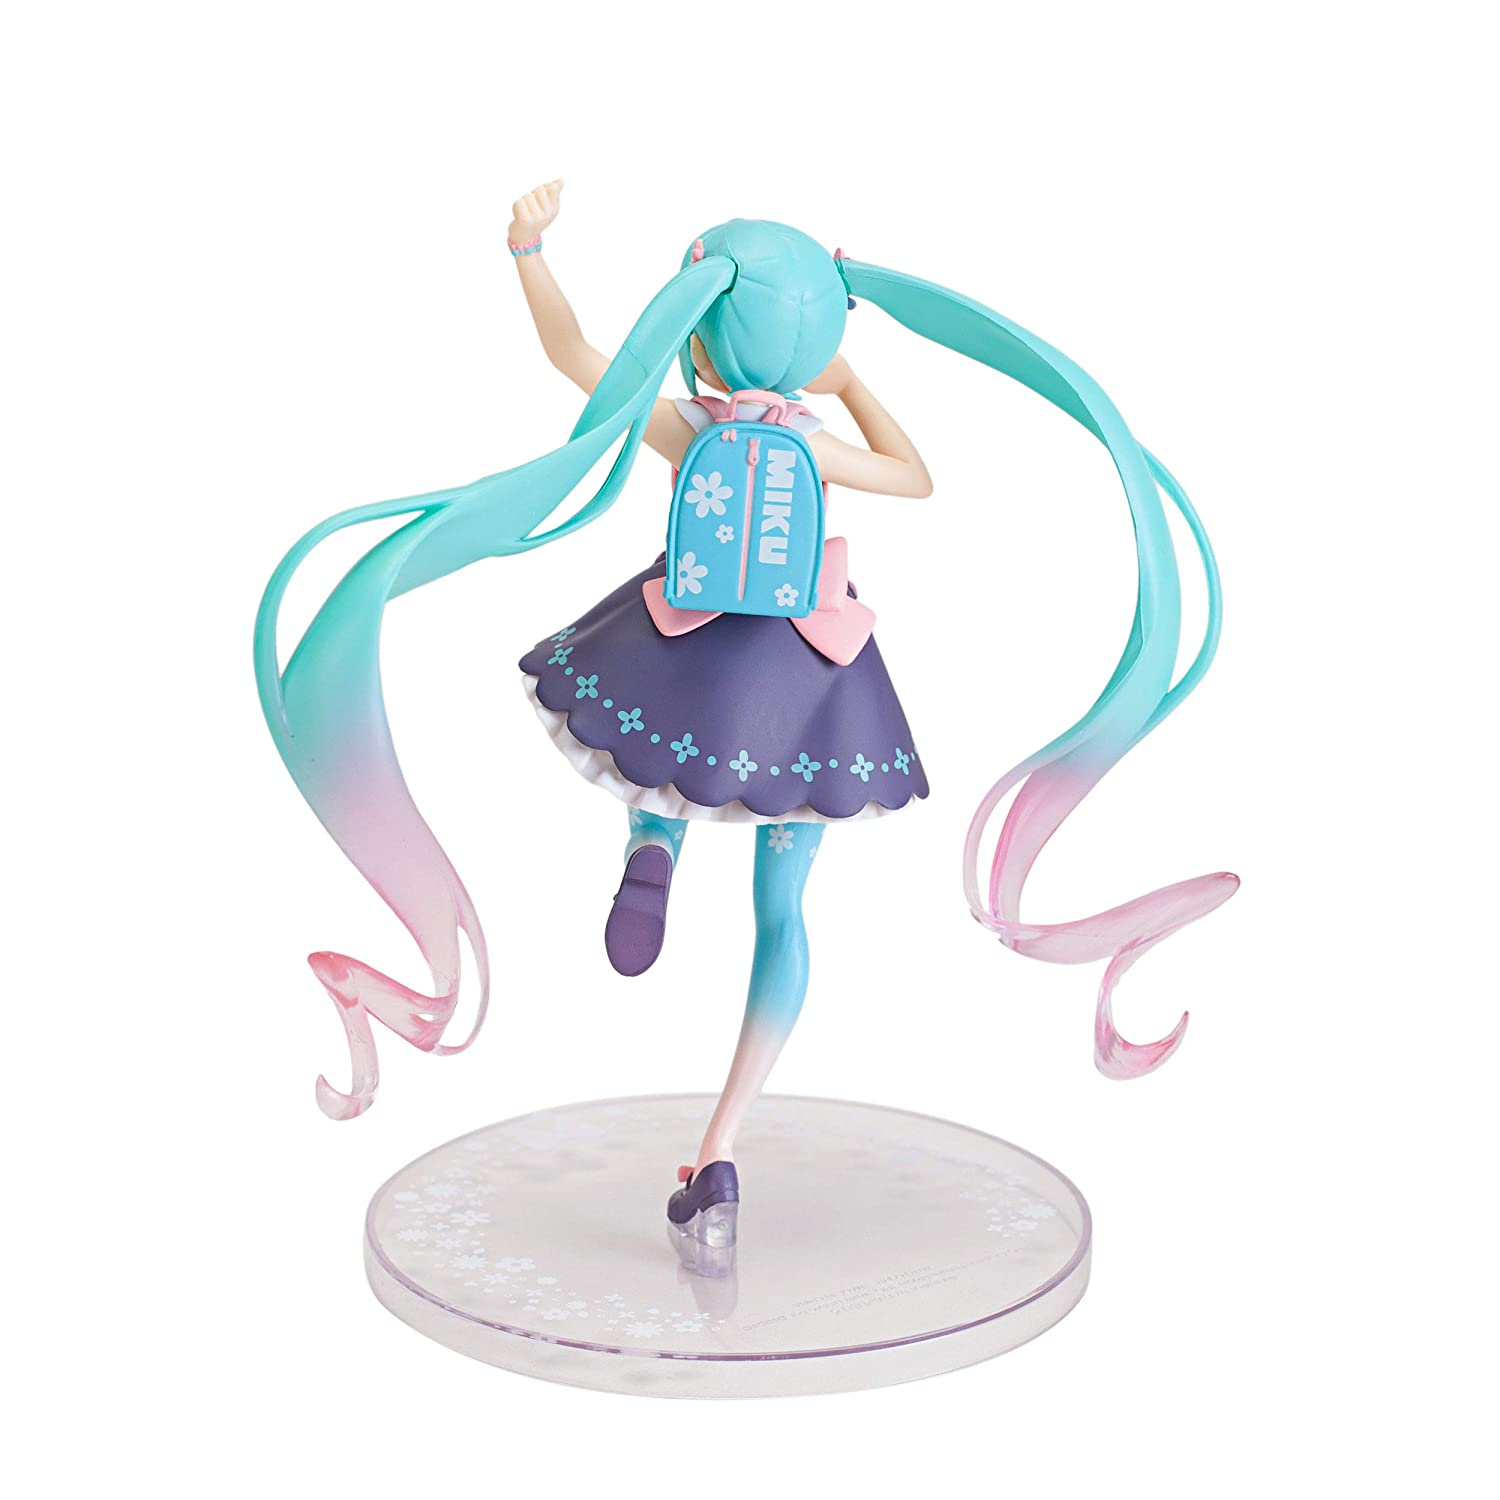 Taito Original Spring Clothes 7 Hatsune Miku Action Figure Matching World SG/_B079FND4T9/_US